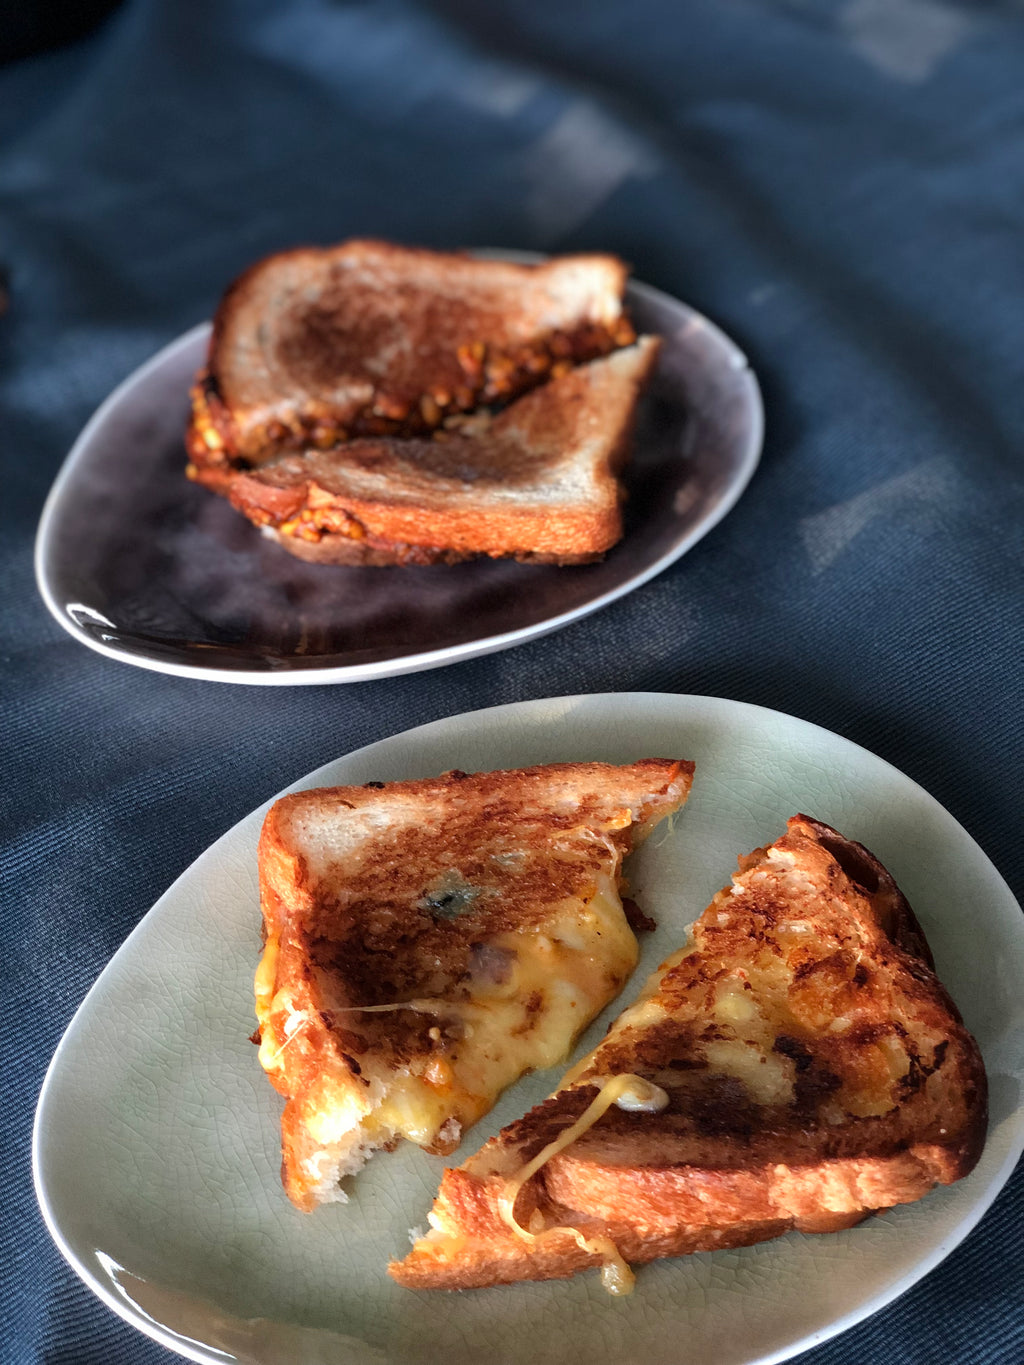 Gourmet grilled cheese sandwiches (x15)